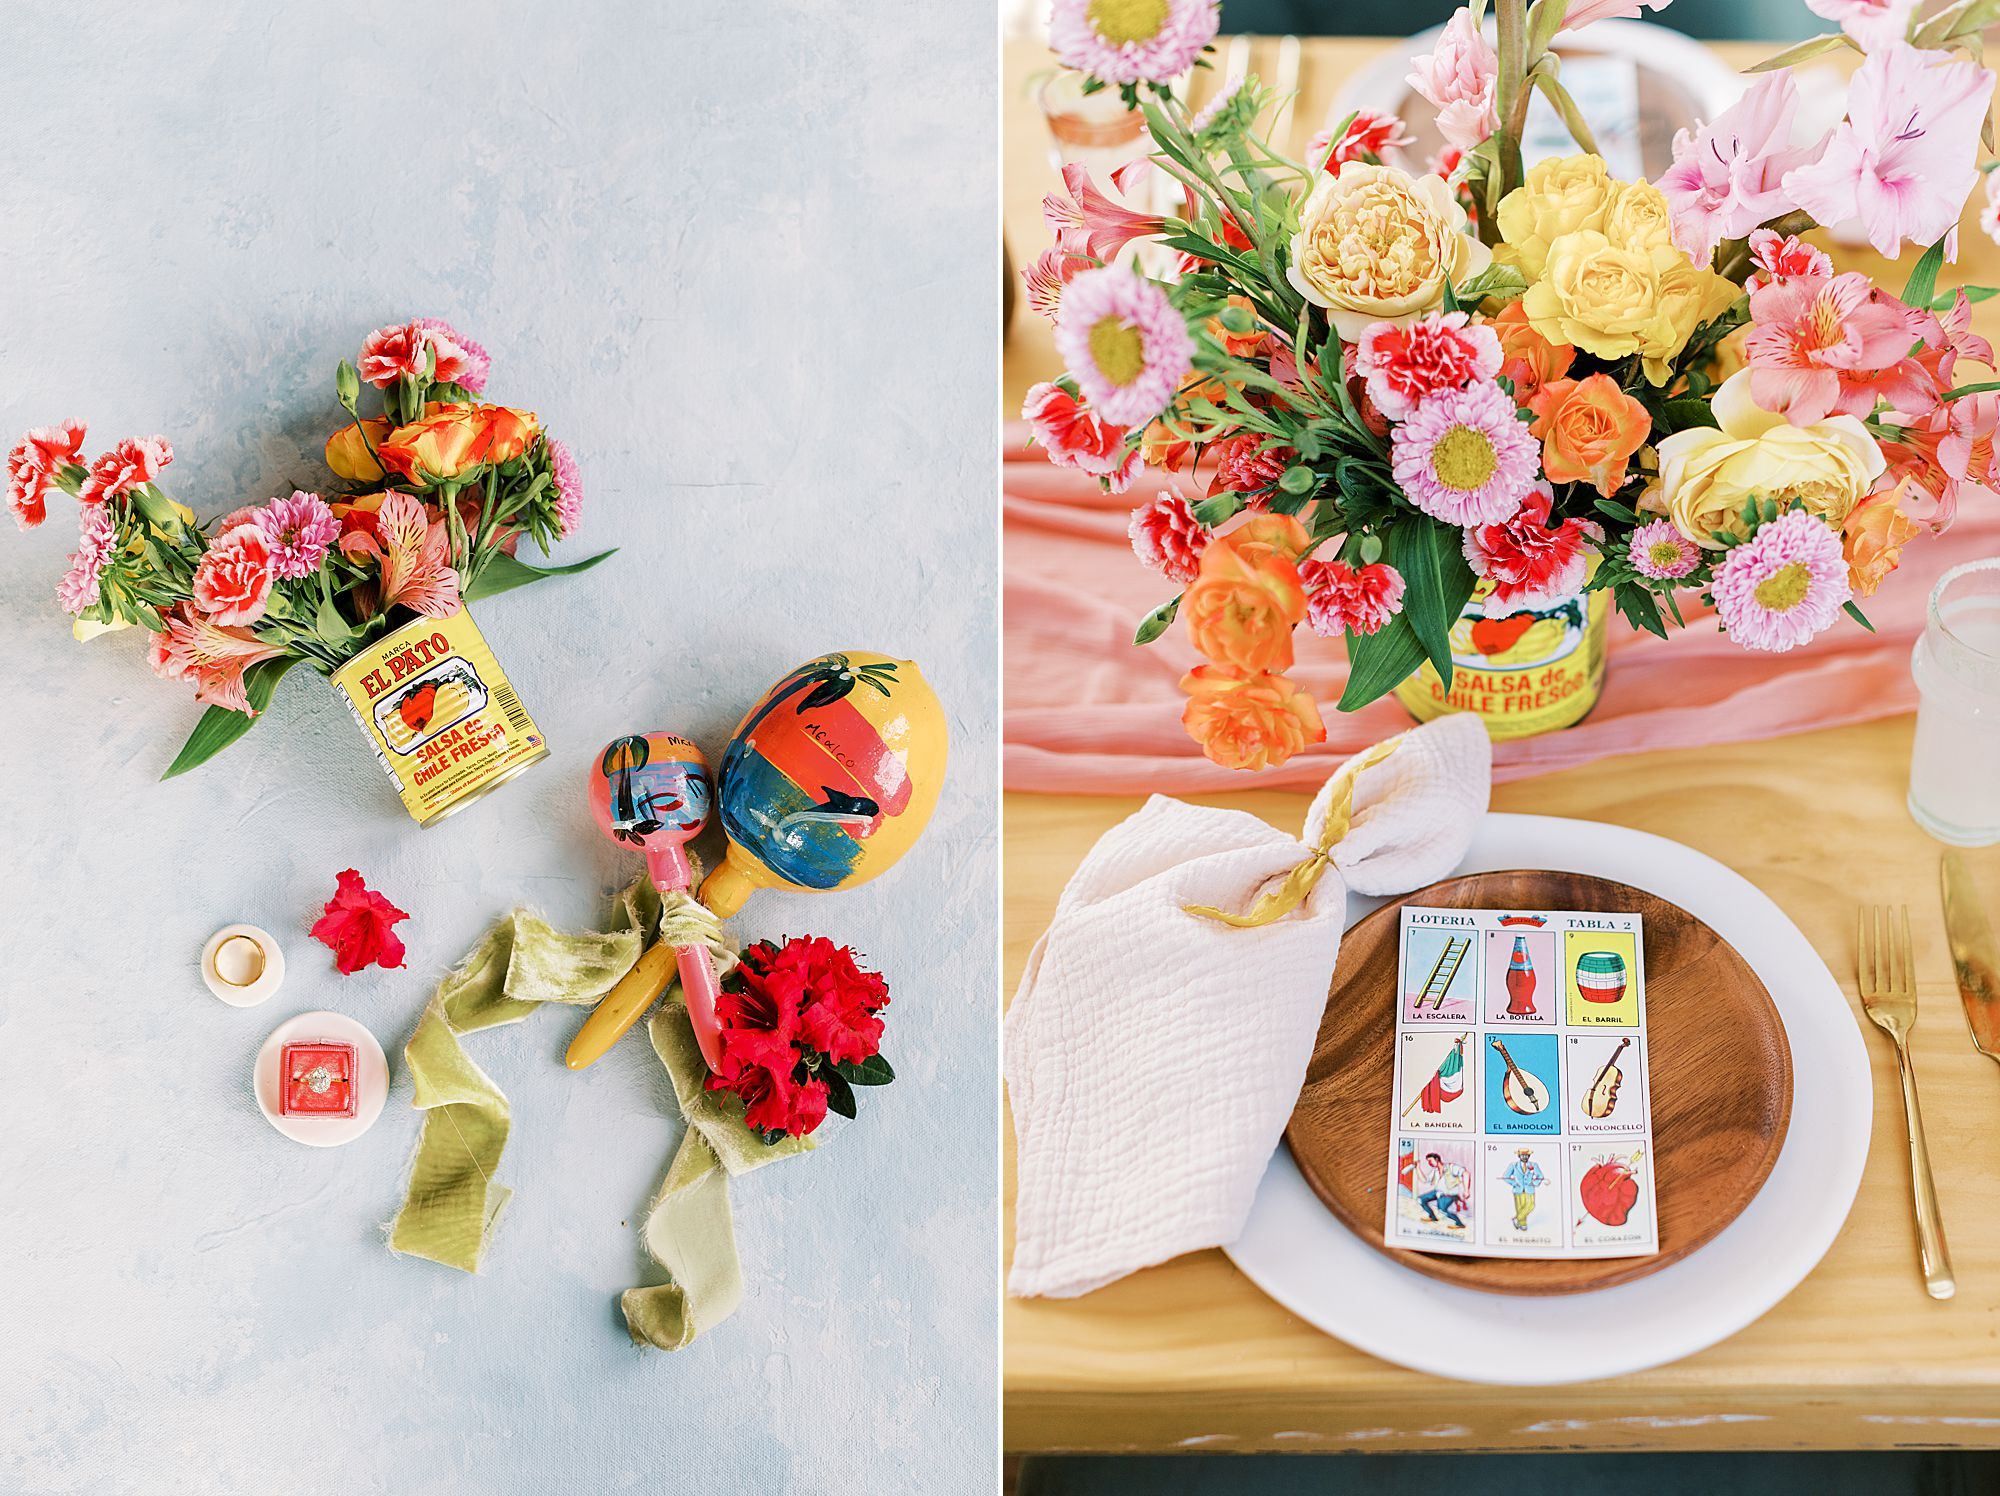 Cinco De Mayo Inspiration for Your FIesta - Party Crush Studio and Ashley Baumgartner_0018.jpg